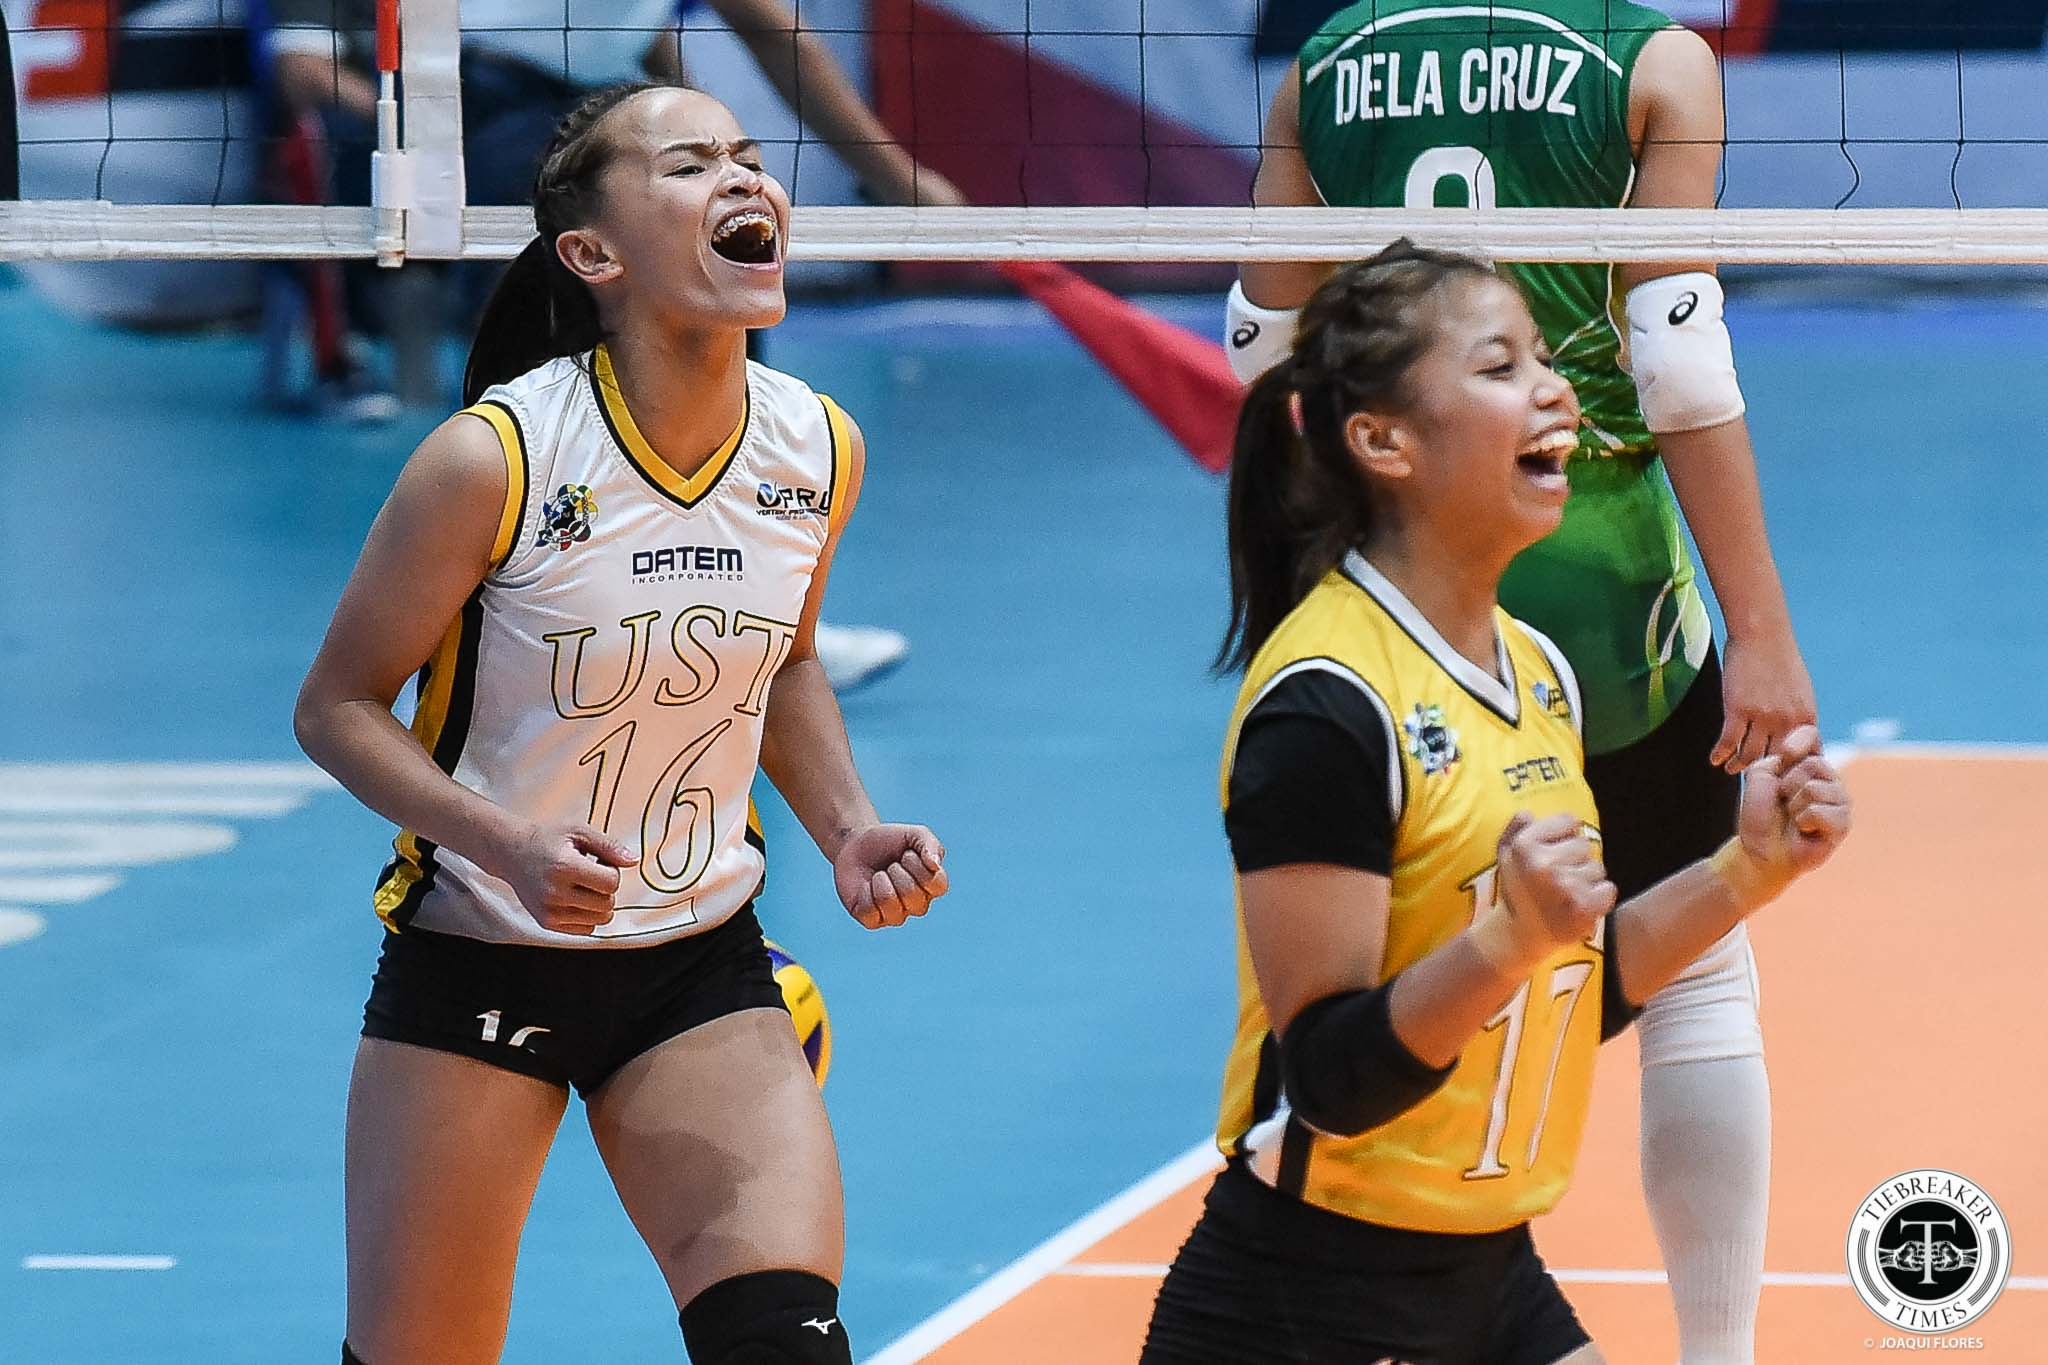 UAAP-81-Volleyball-DLSU-vs.-UST-Rondina-6936 La Salle needs to match Rondina's fire to survive, says Ramil De Jesus DLSU News UAAP Volleyball  - philippine sports news